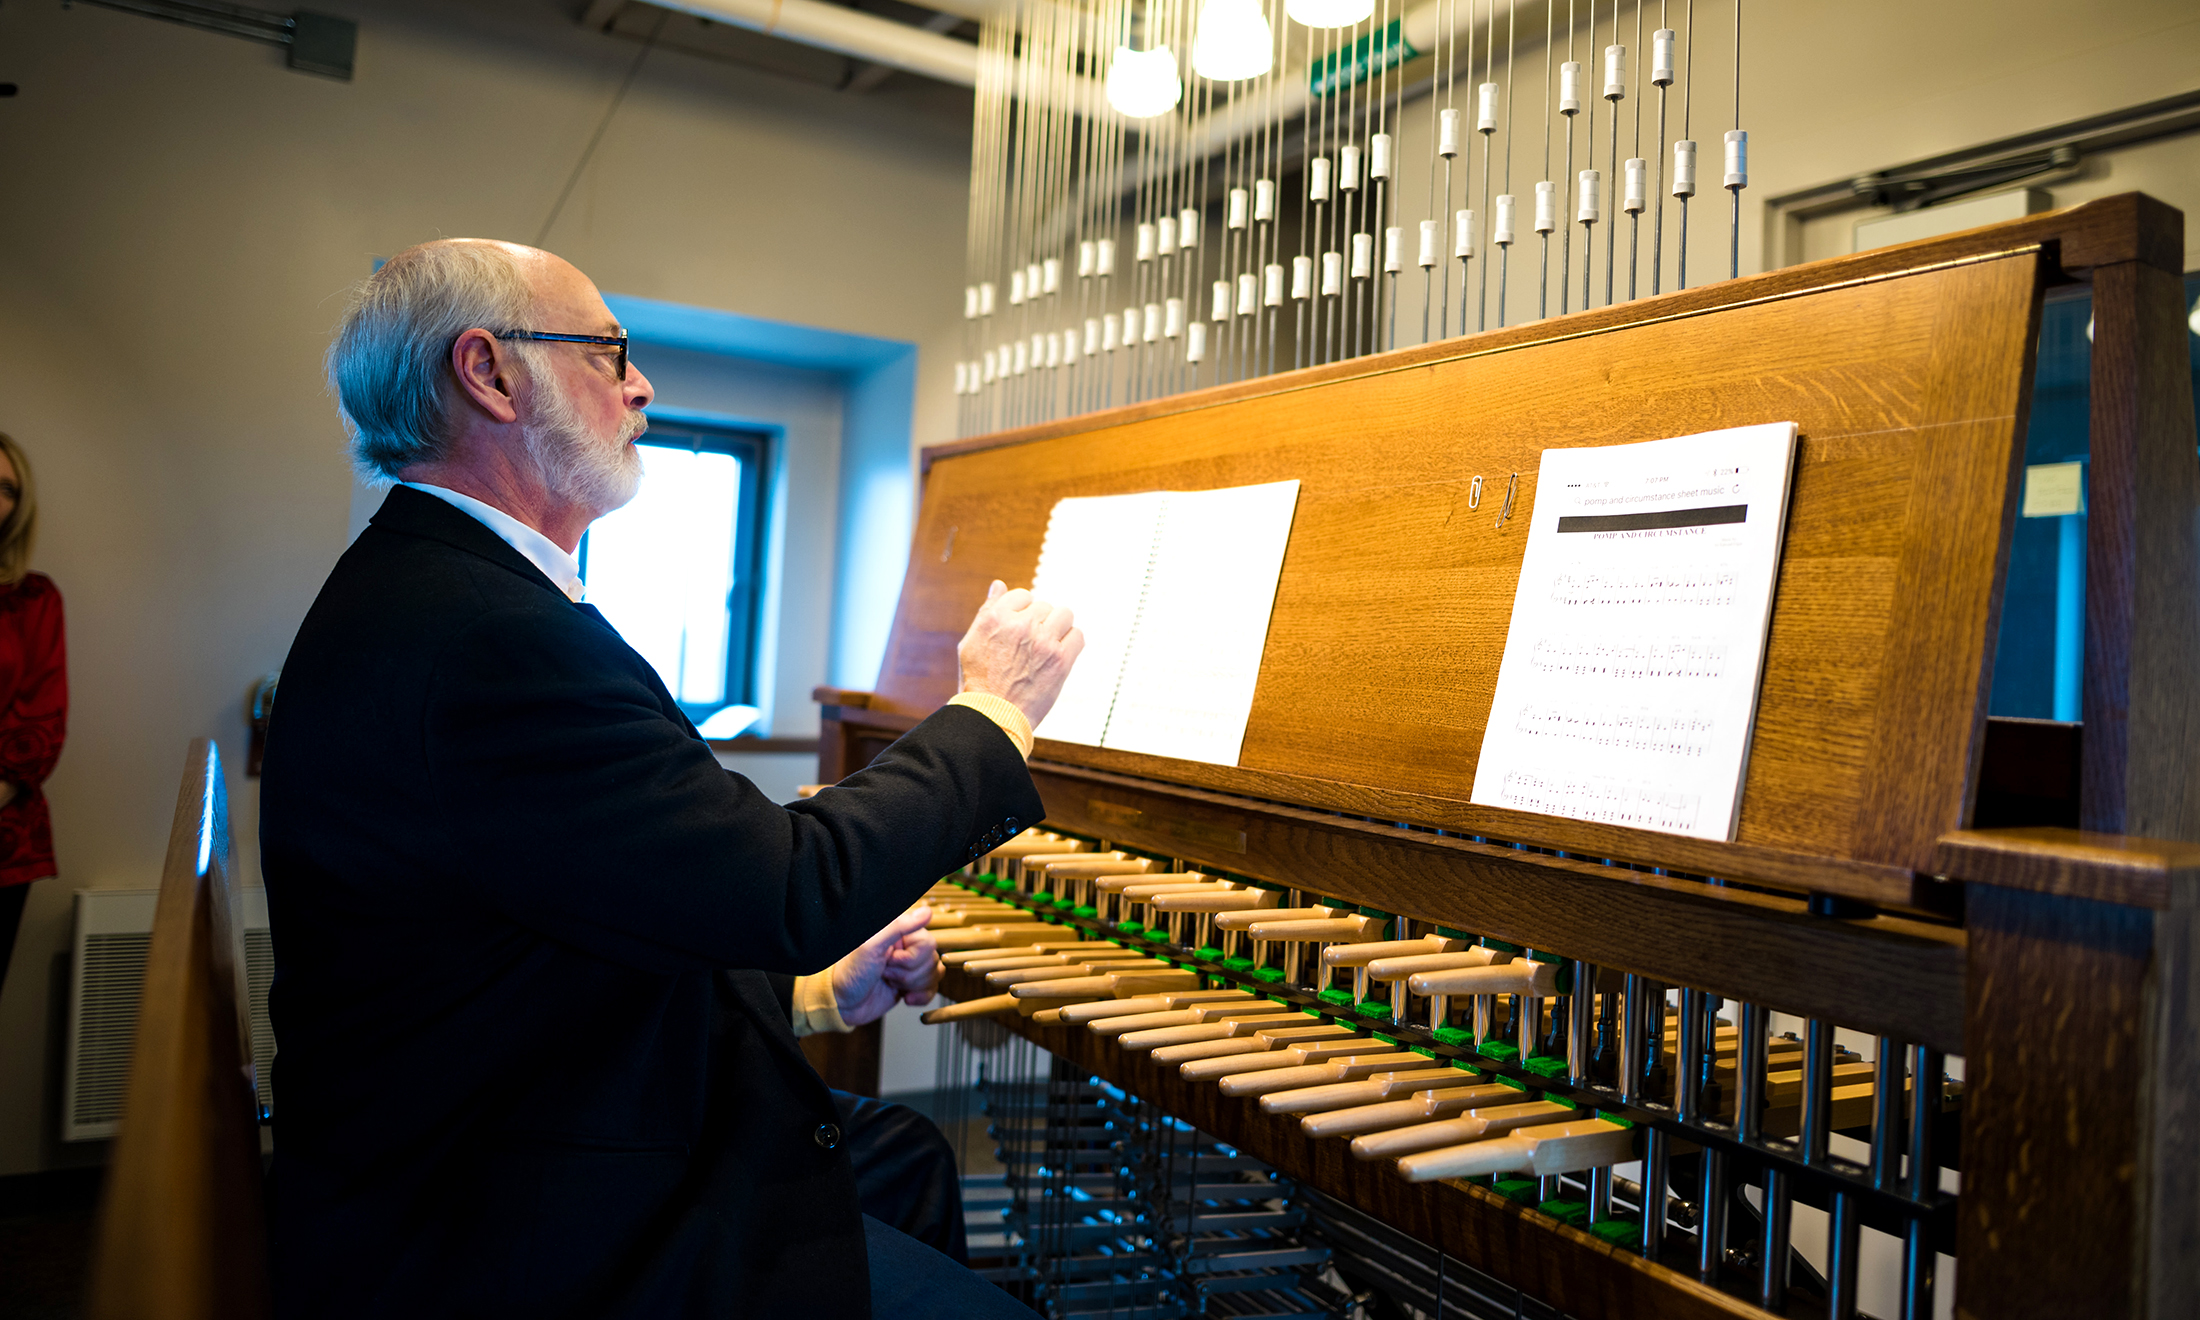 OU's Summer Carillon Series returns July 5